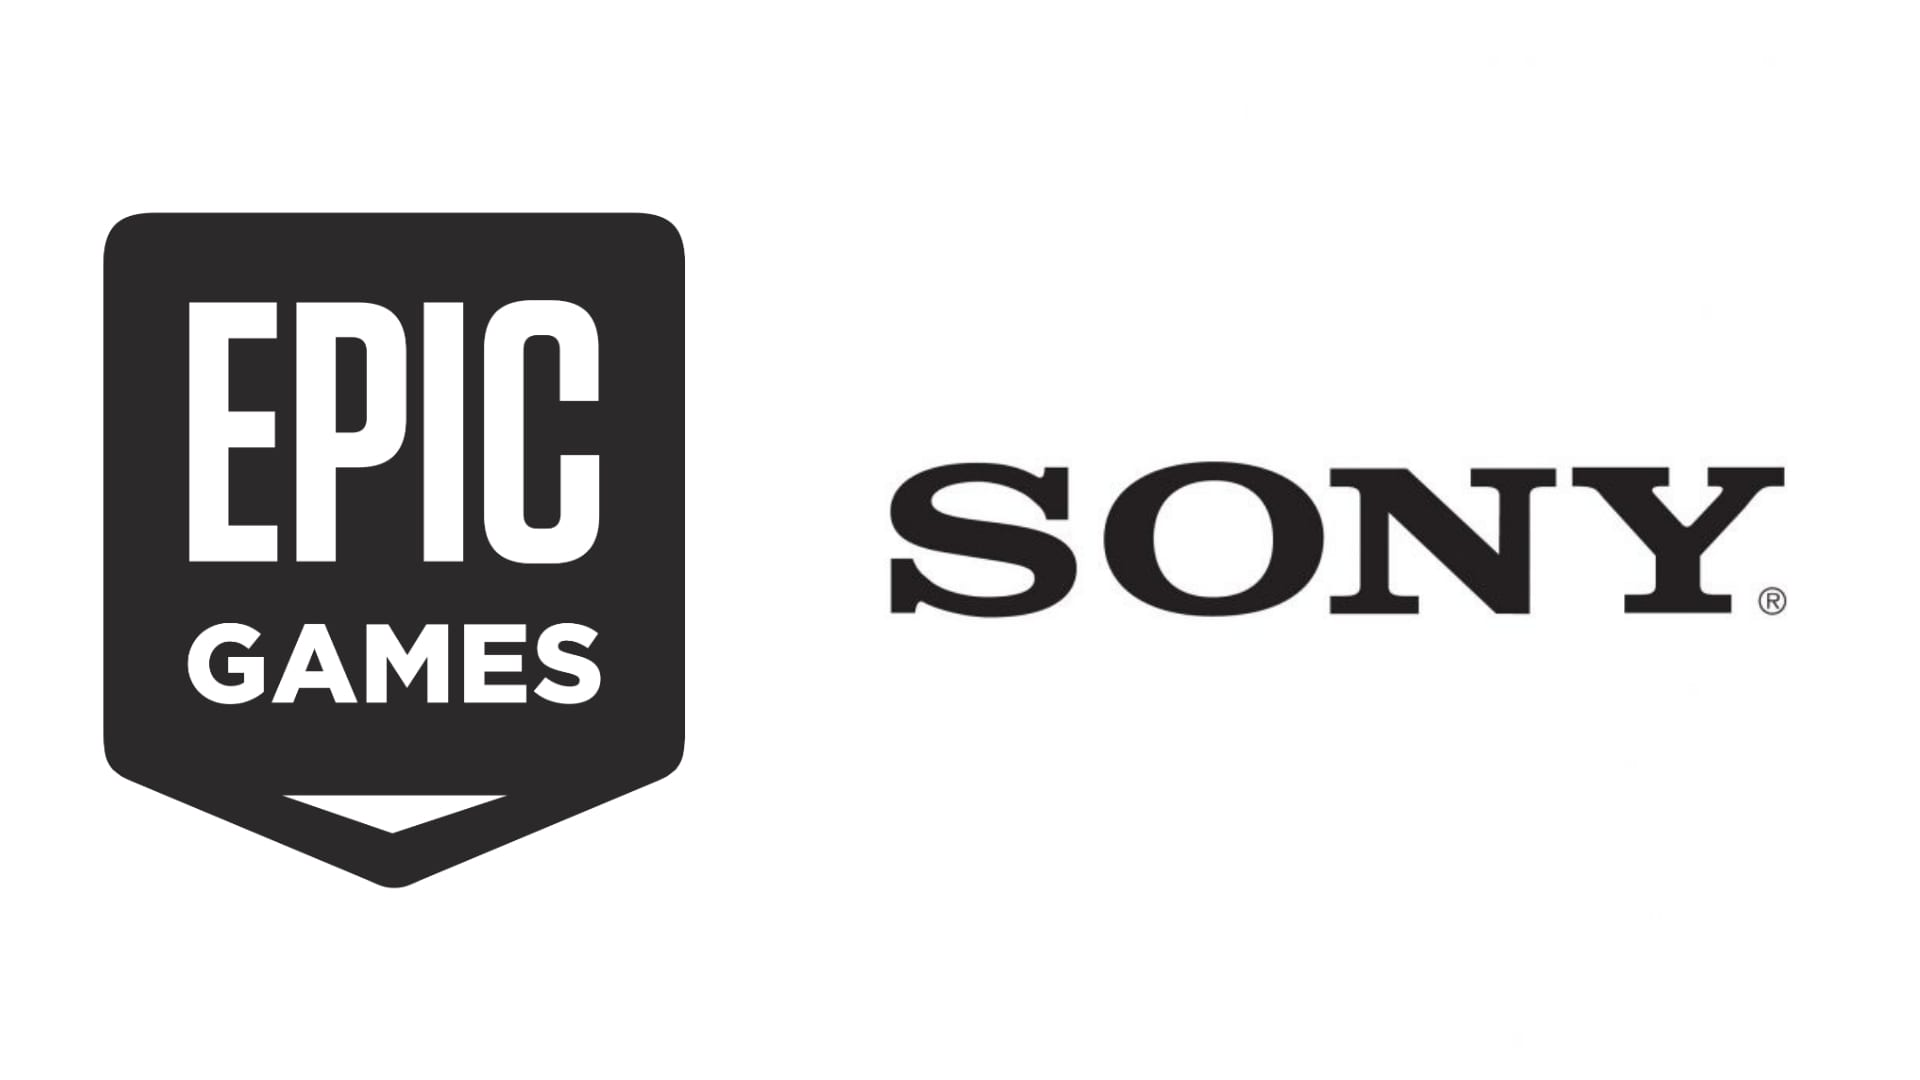 Epic and Sony